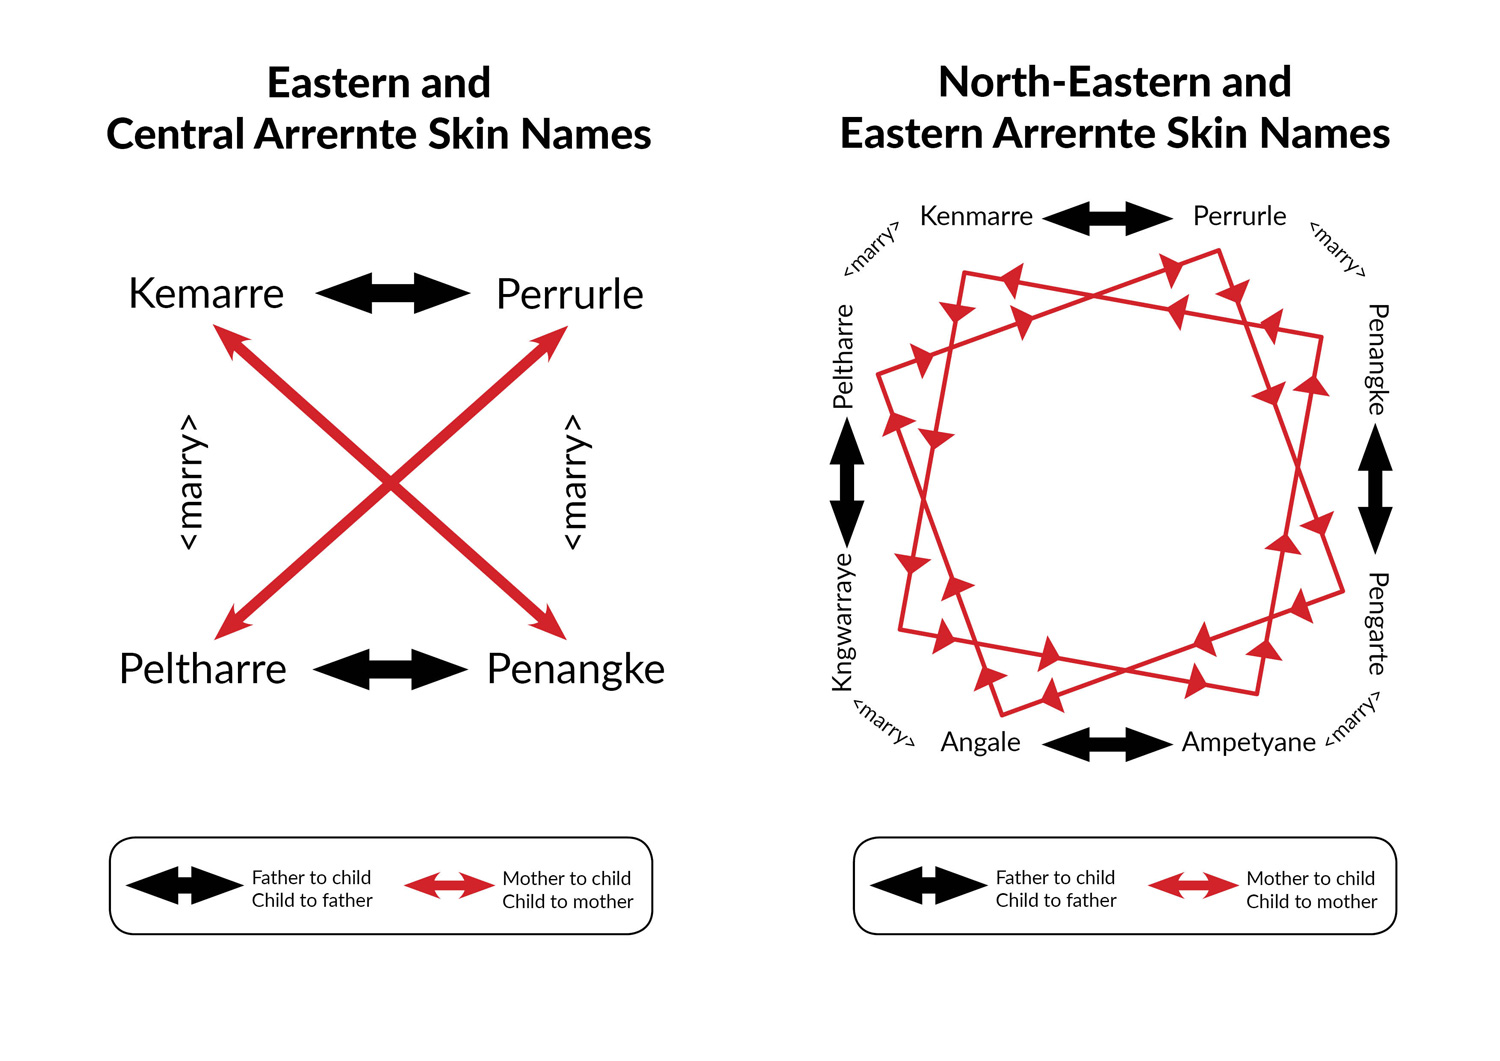 North Eastern and Eastern Arrernte skin names